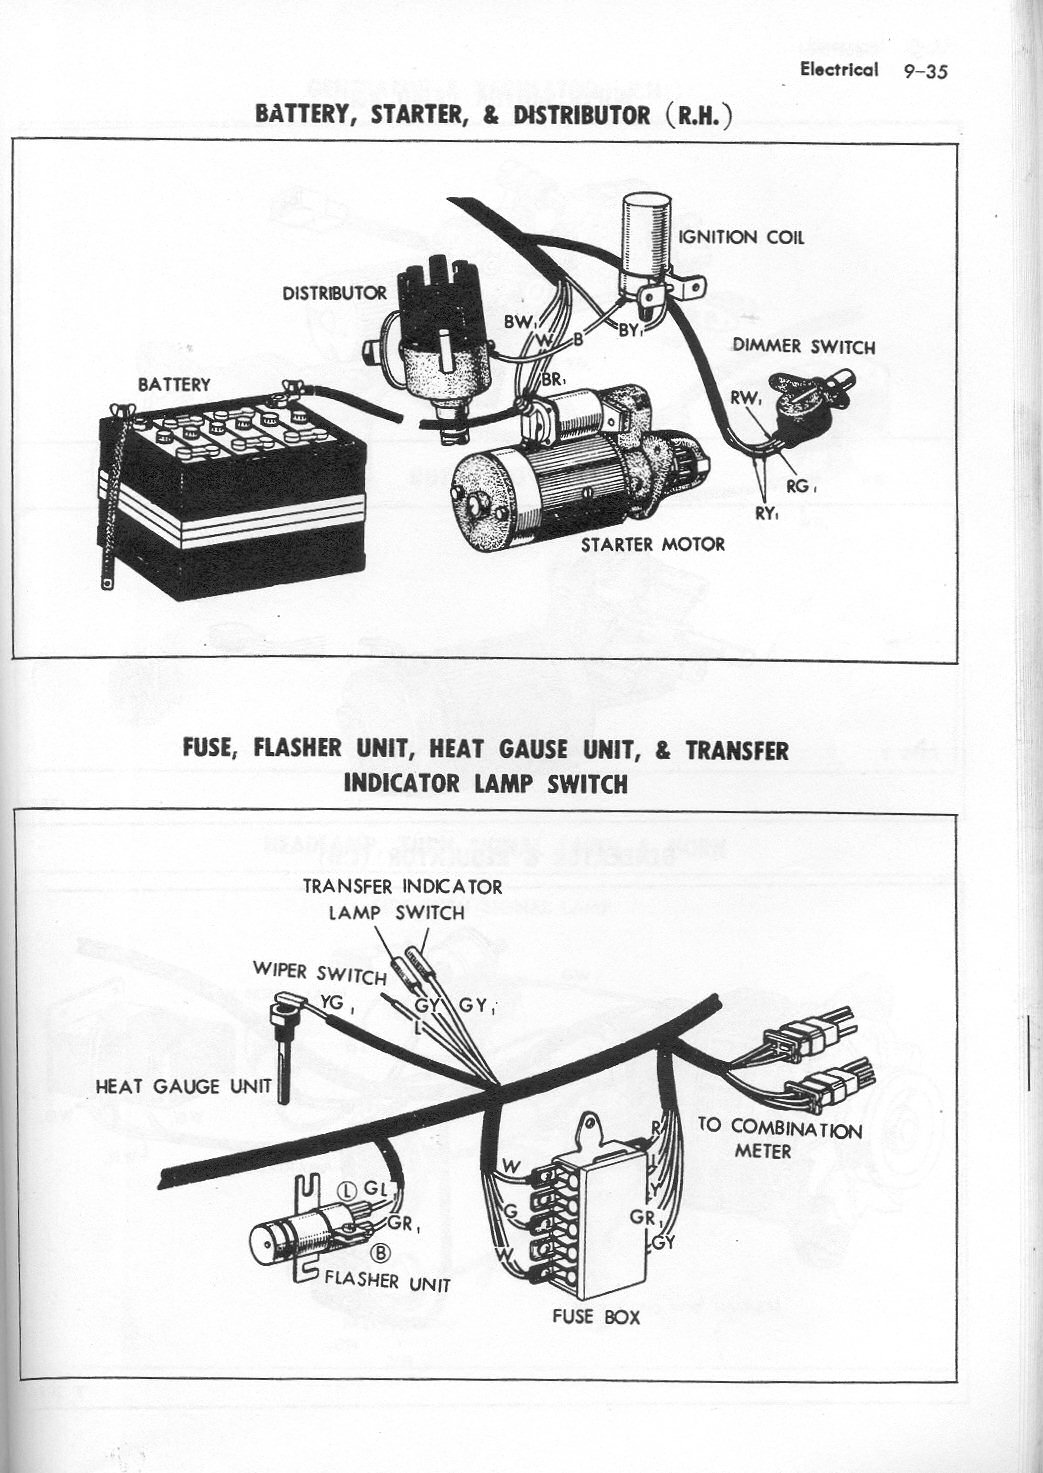 1972 Fj40 Wiring Diagram Electrical Diagrams 1979 1980 1971 Wire Data Schema U2022